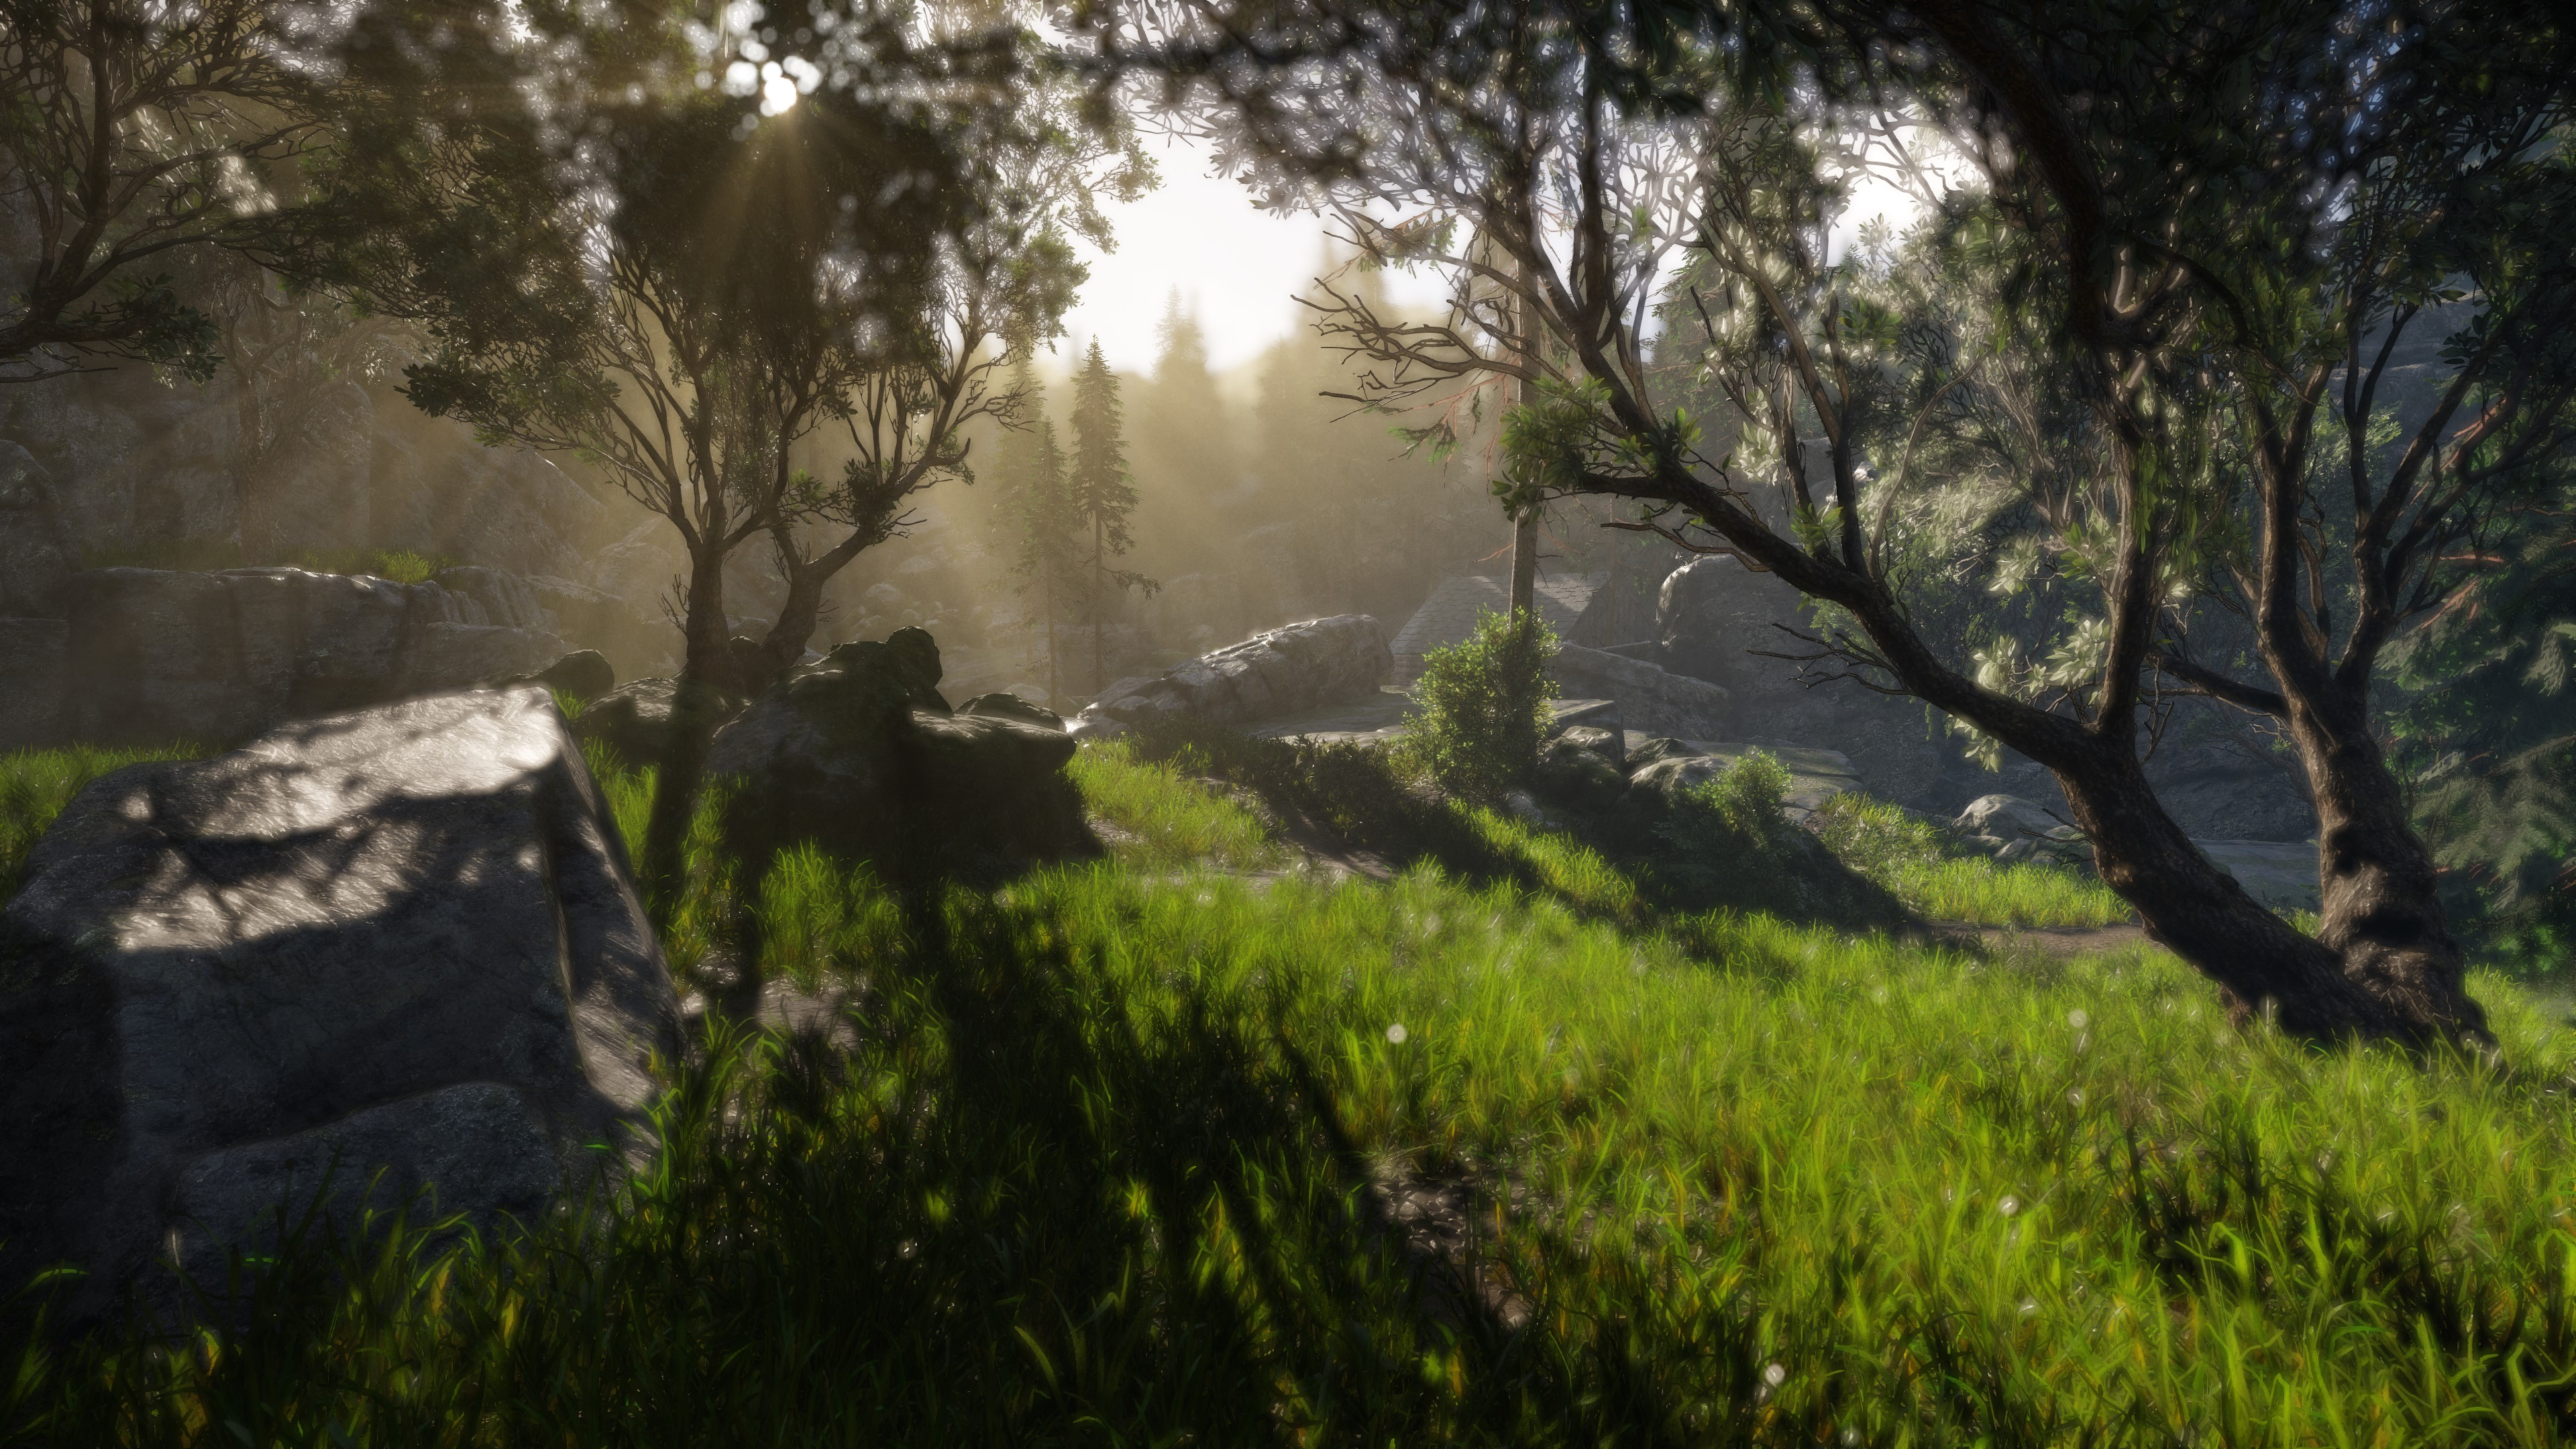 Looking ahead at things to come: CRYENGINE 3.7